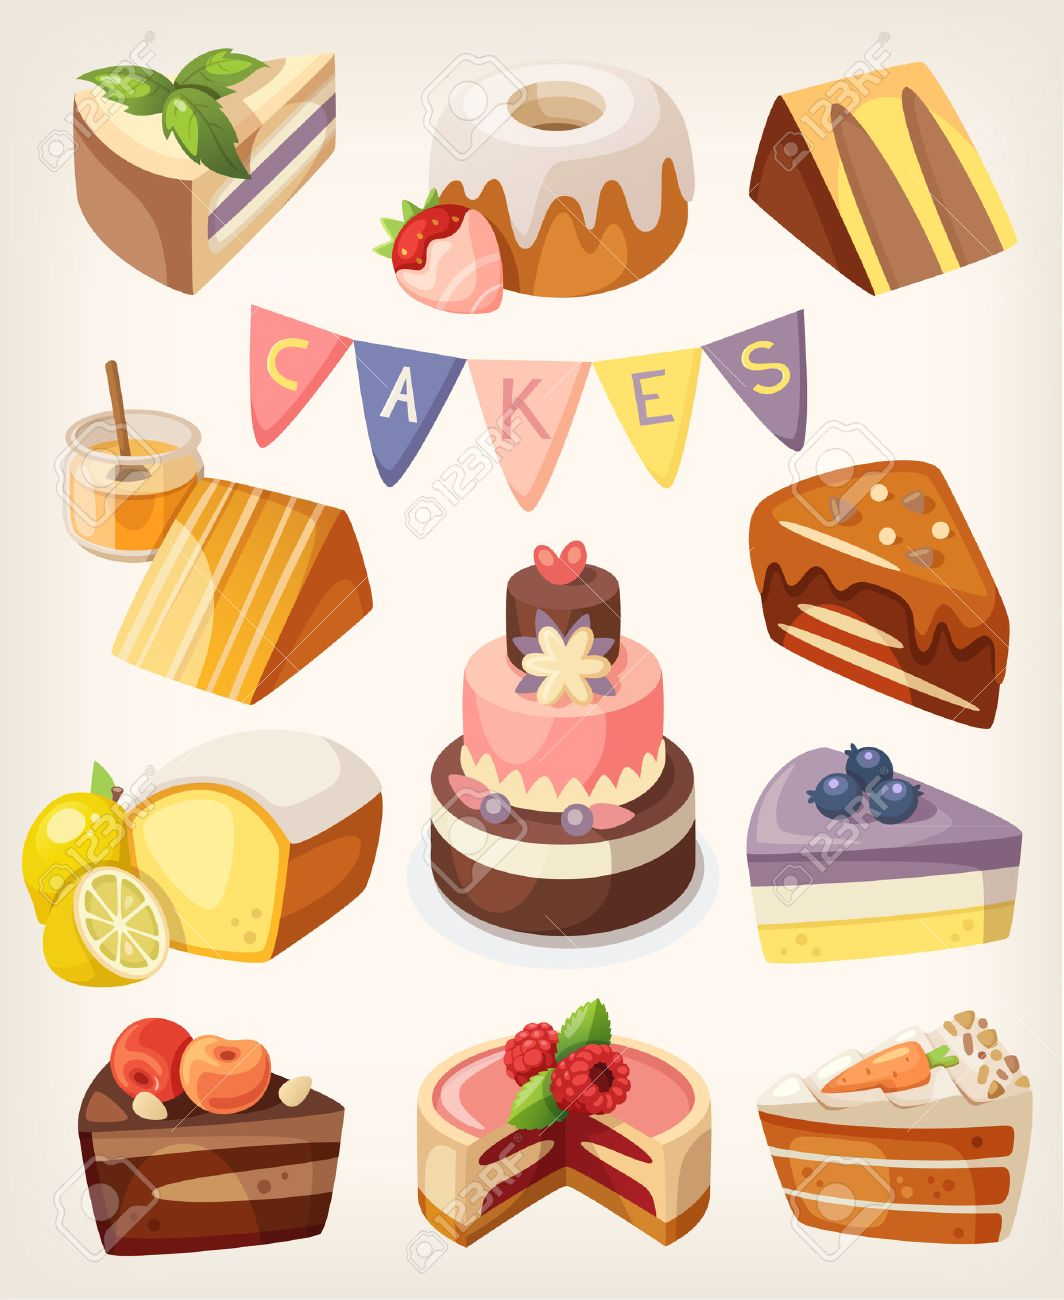 375,768 Dessert Stock Illustrations, Cliparts And Royalty Free ...